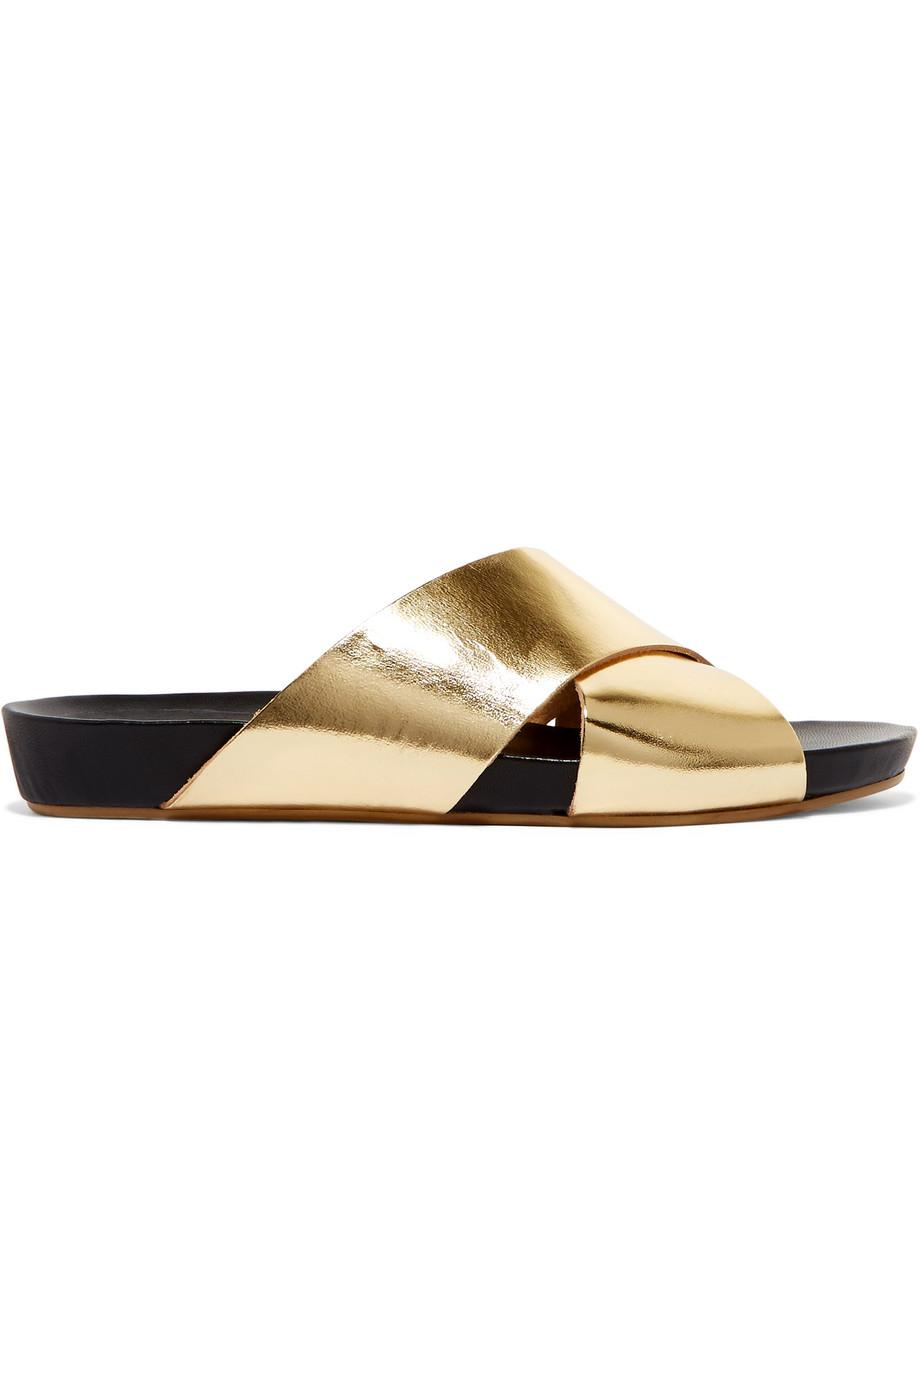 ATP Atelier Doris Metallic Leather Slides To Buy Clearance Official tSHpe